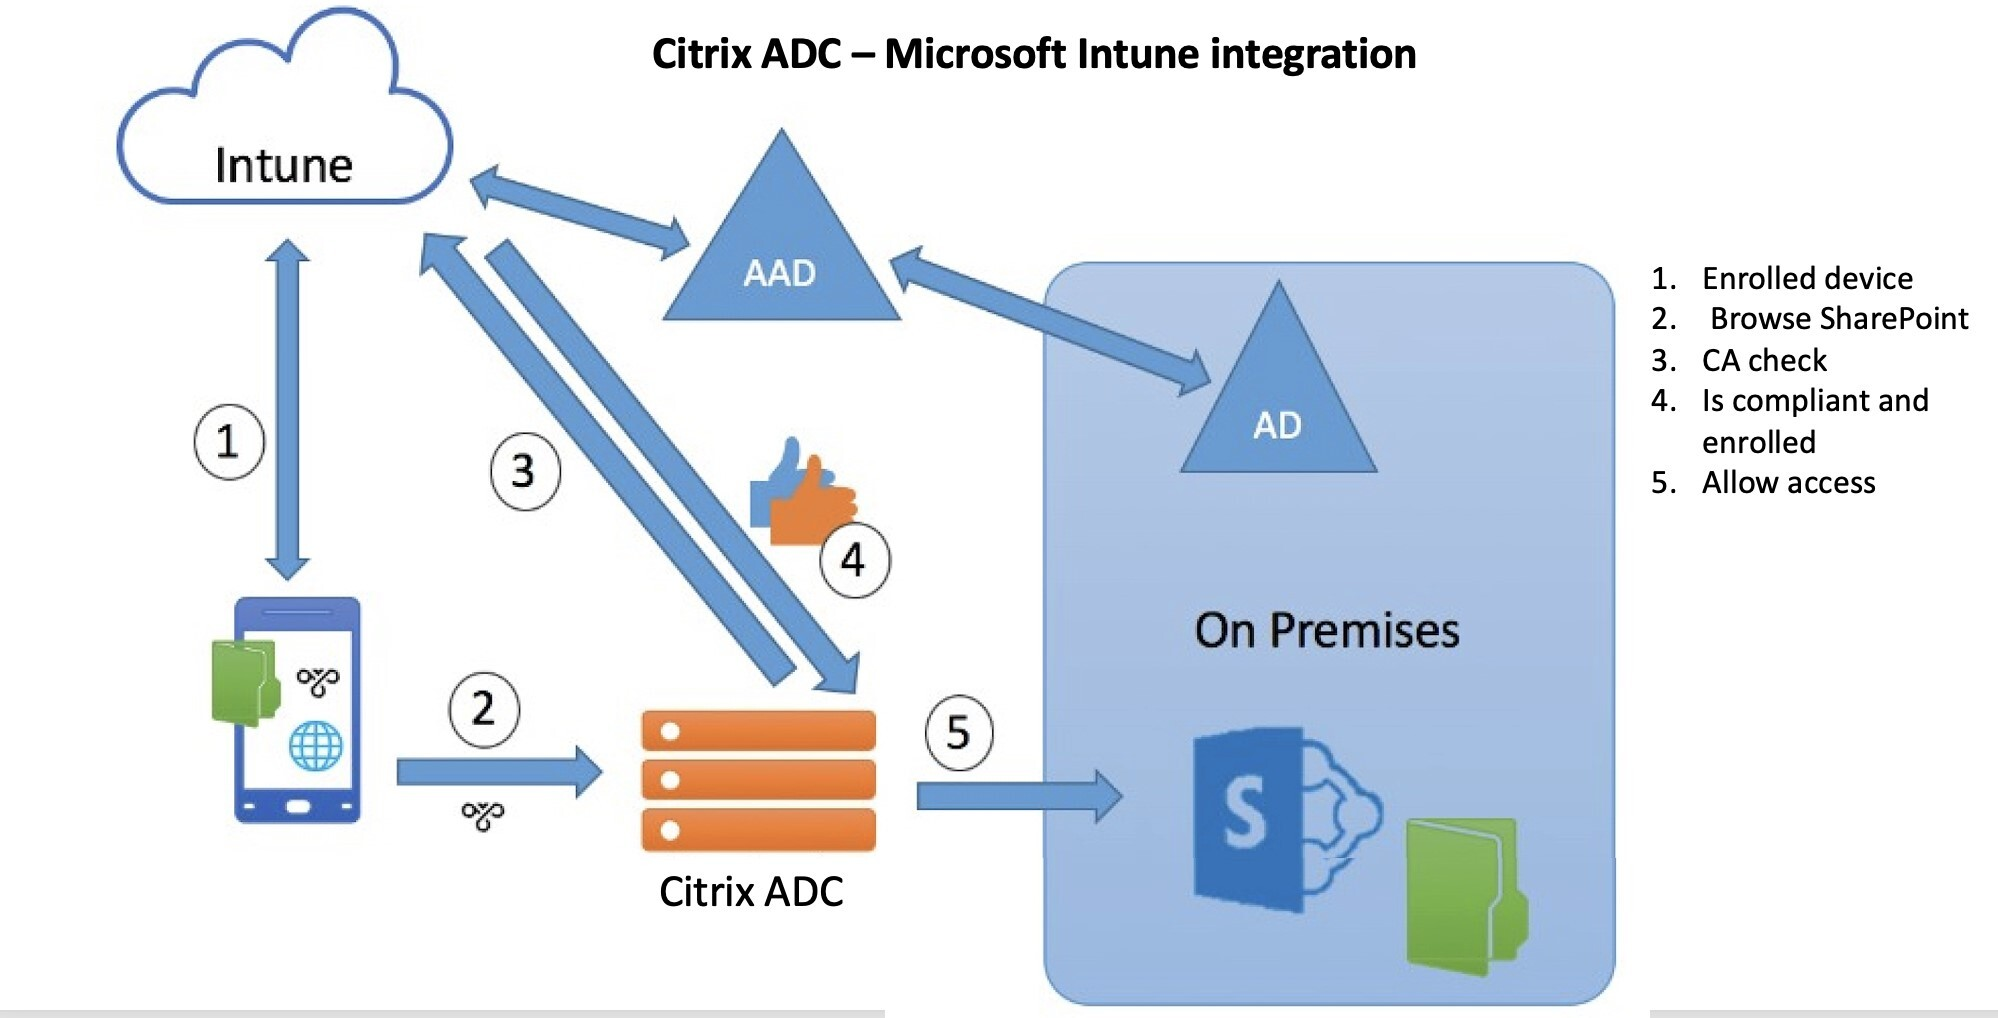 Intune and Citrix ADC integration